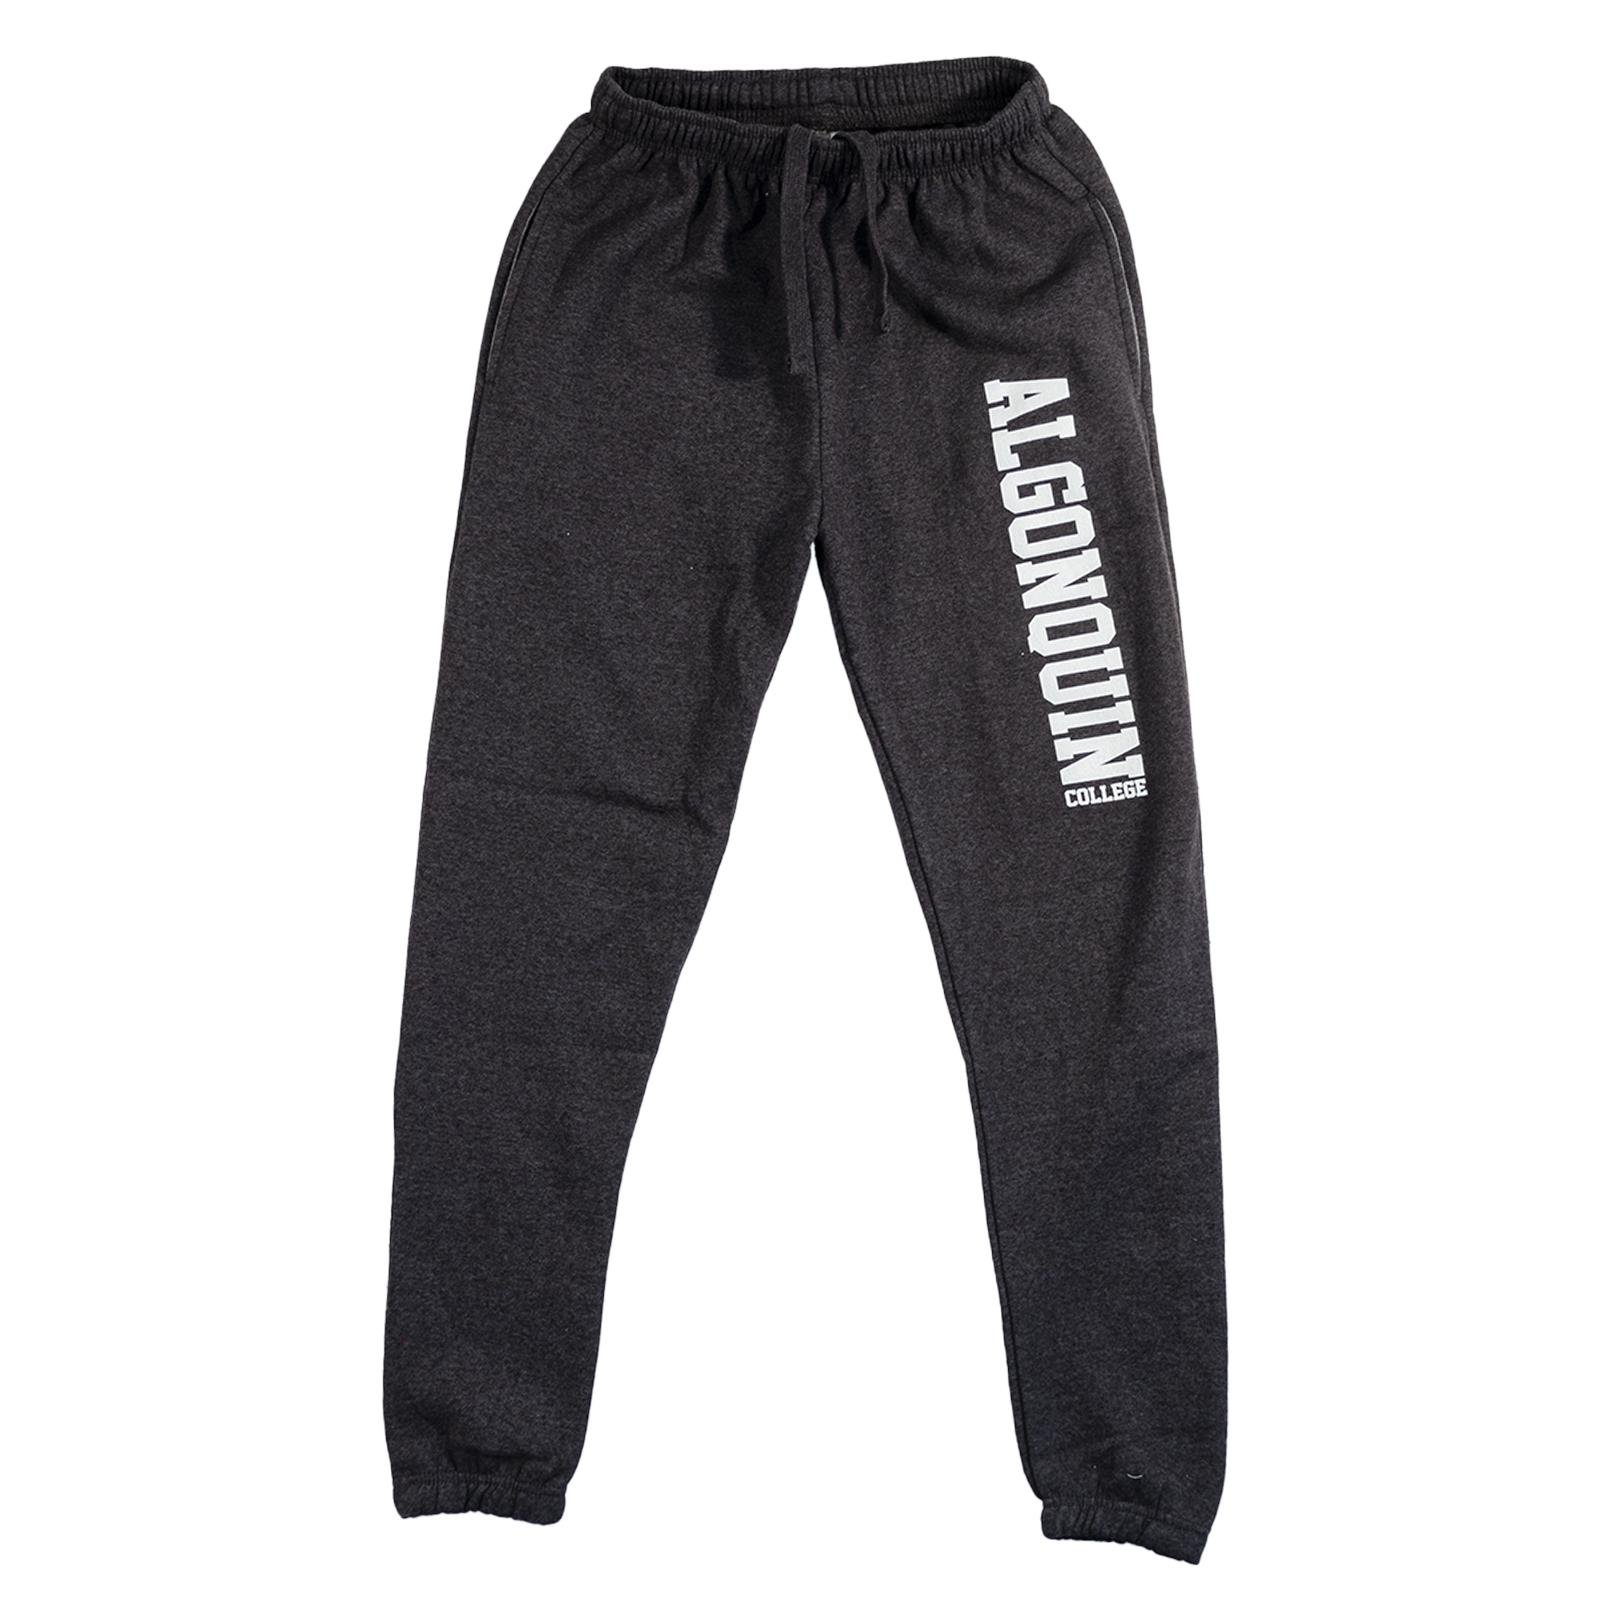 Comfort Fleece Sweatpants